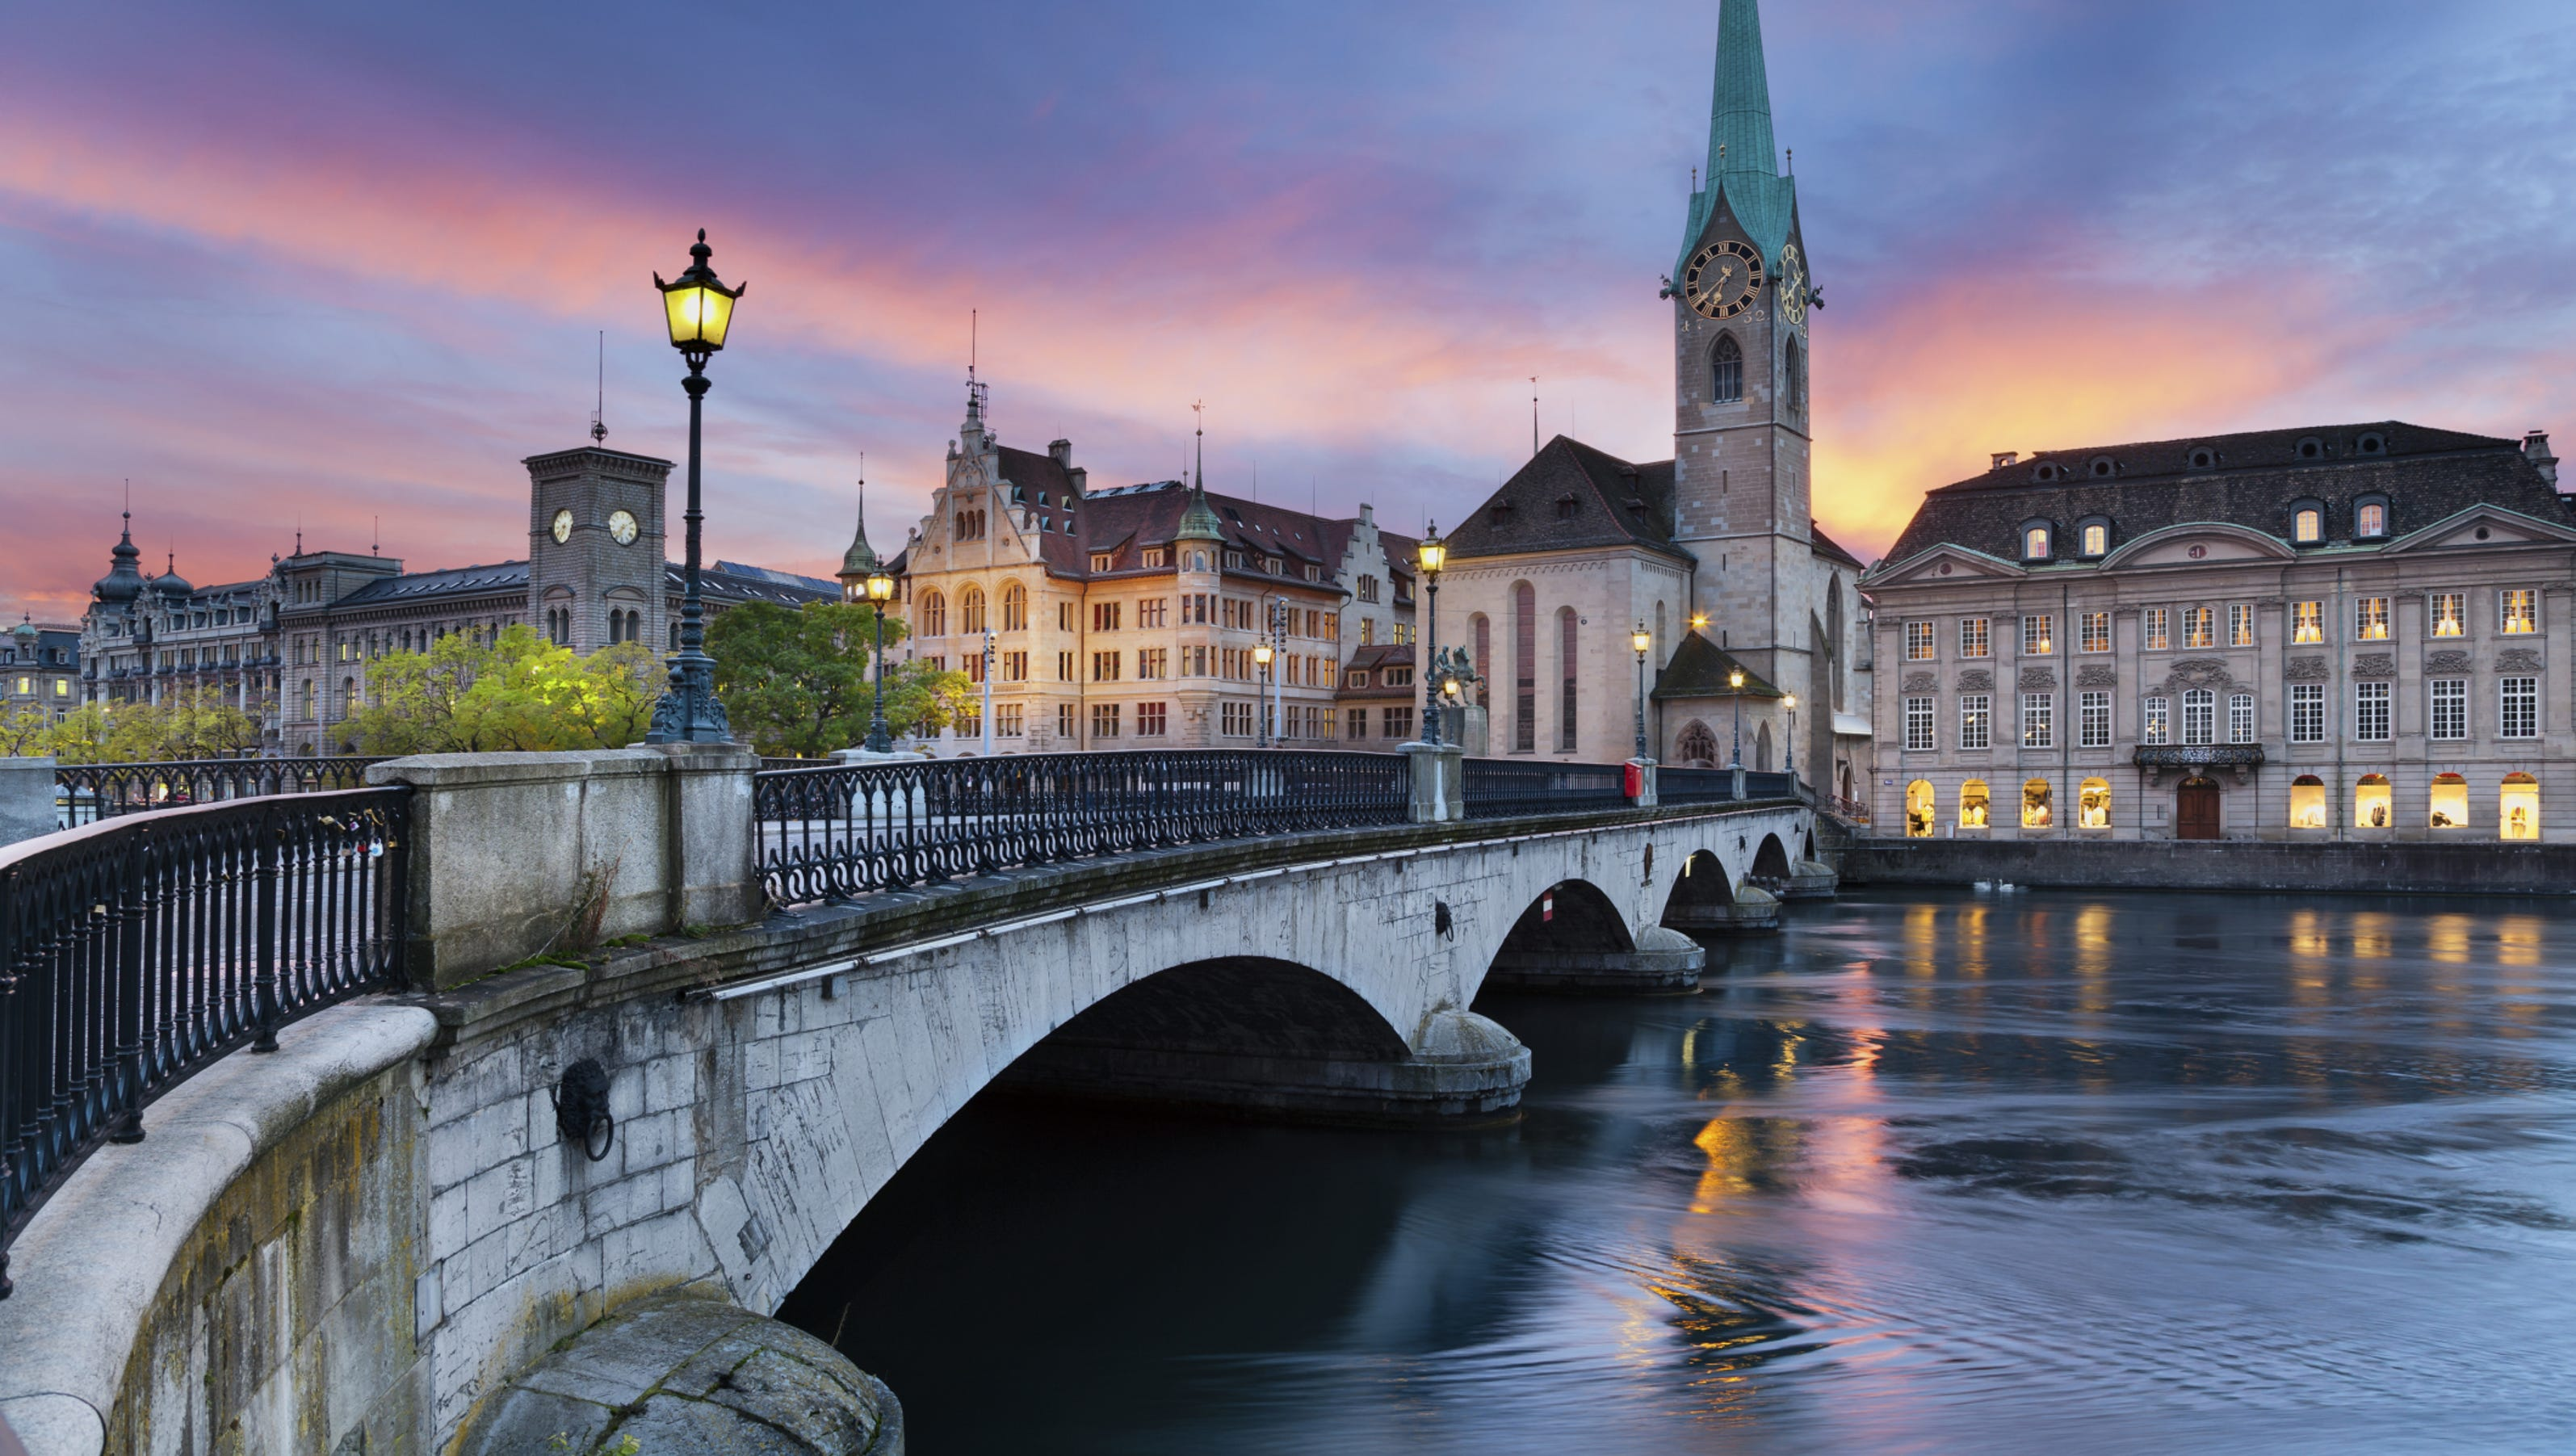 For the sixth year in a row, this European country was rated as having the world's most competitive economy.